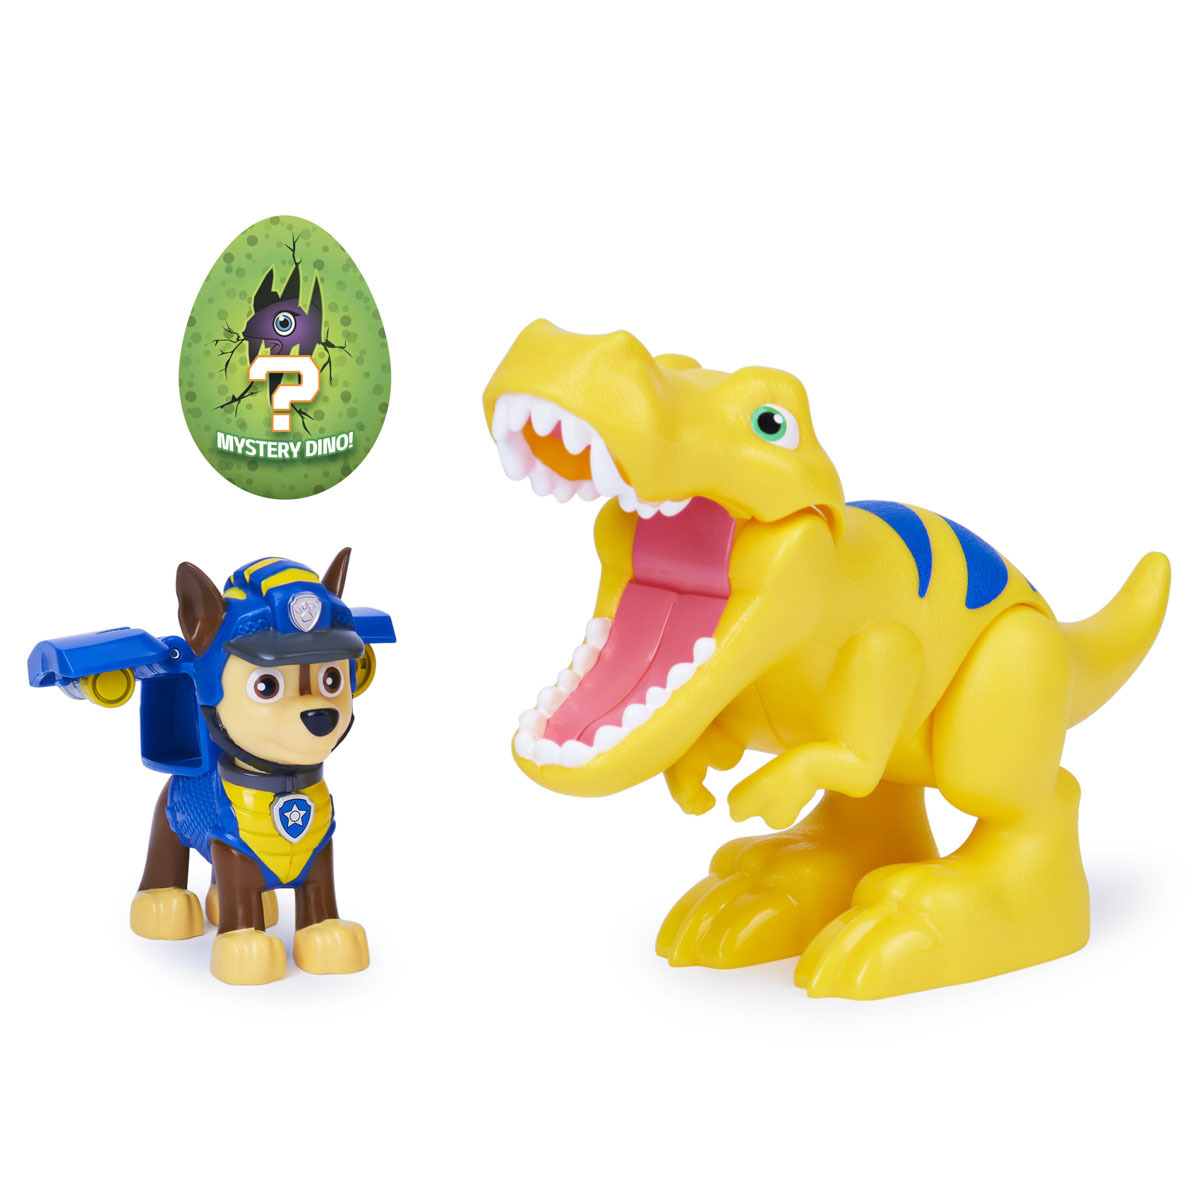 Paw Patrol Dino Rescue Figures and Mystery Dinosaur - Chase and Tyrannosaurus Rex from Early Learning Center